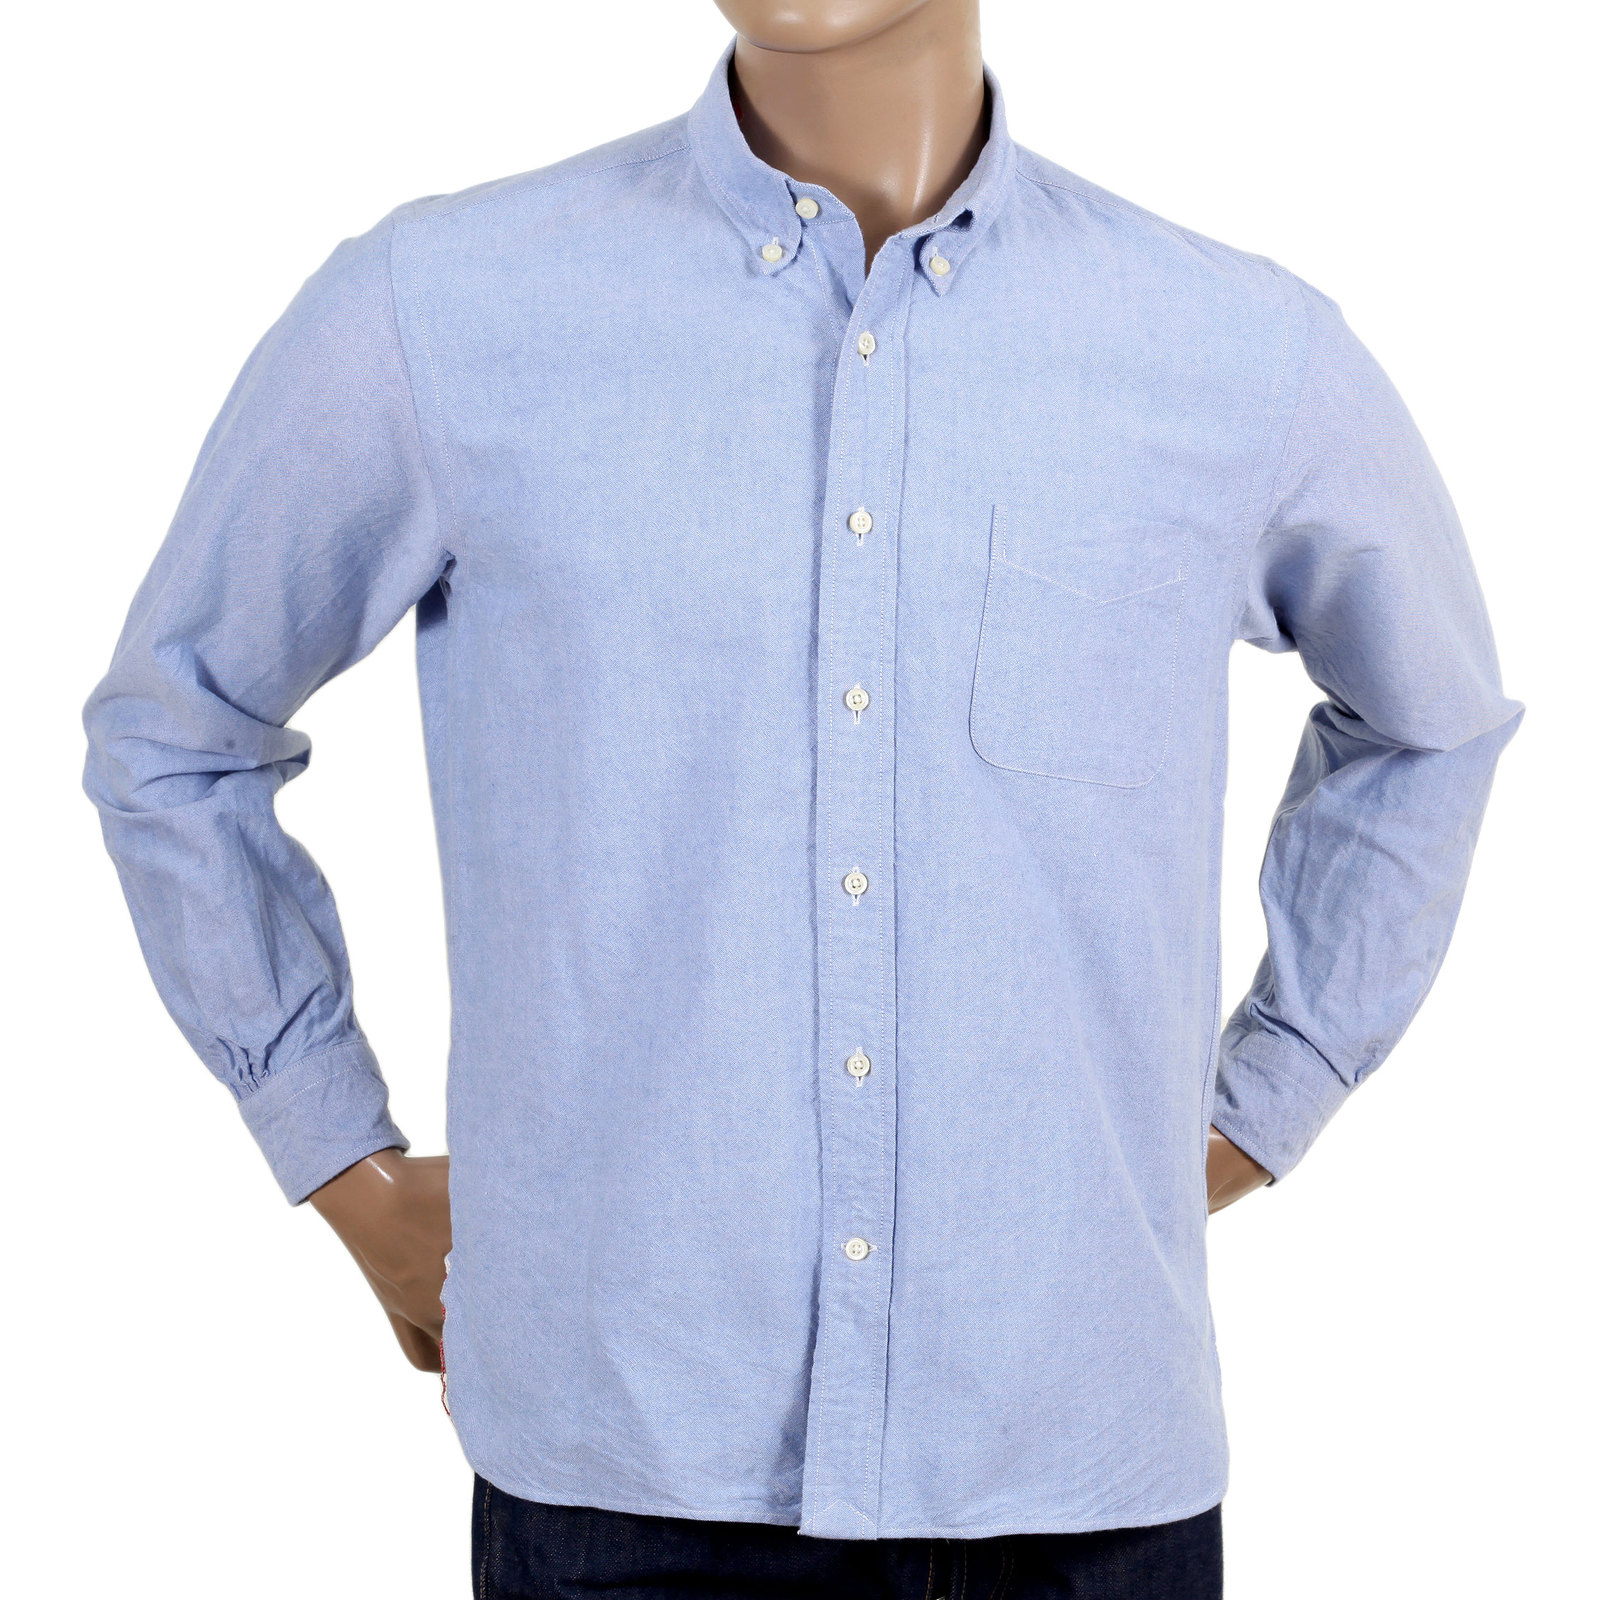 1dbb10463bc Buy Oxford Blue Shirt for Men with Button Down Collars